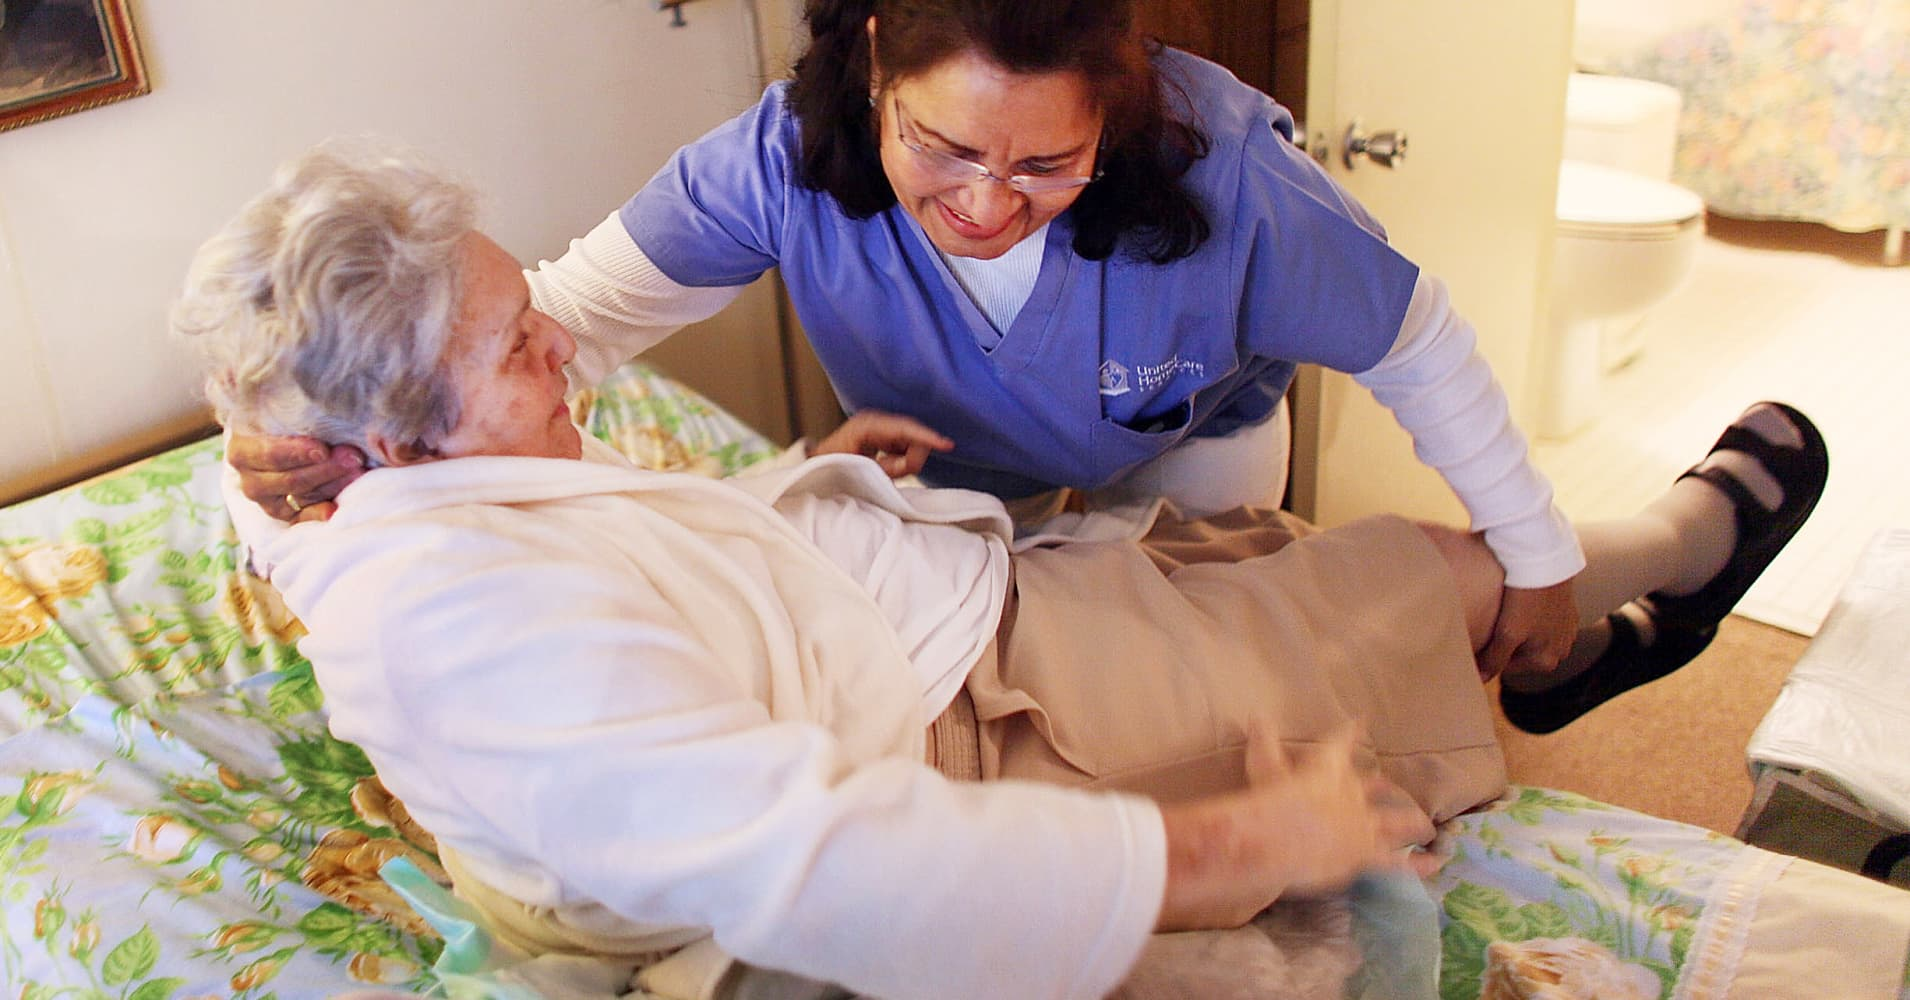 New incentives for hospitals are improving quality of care for patients at home